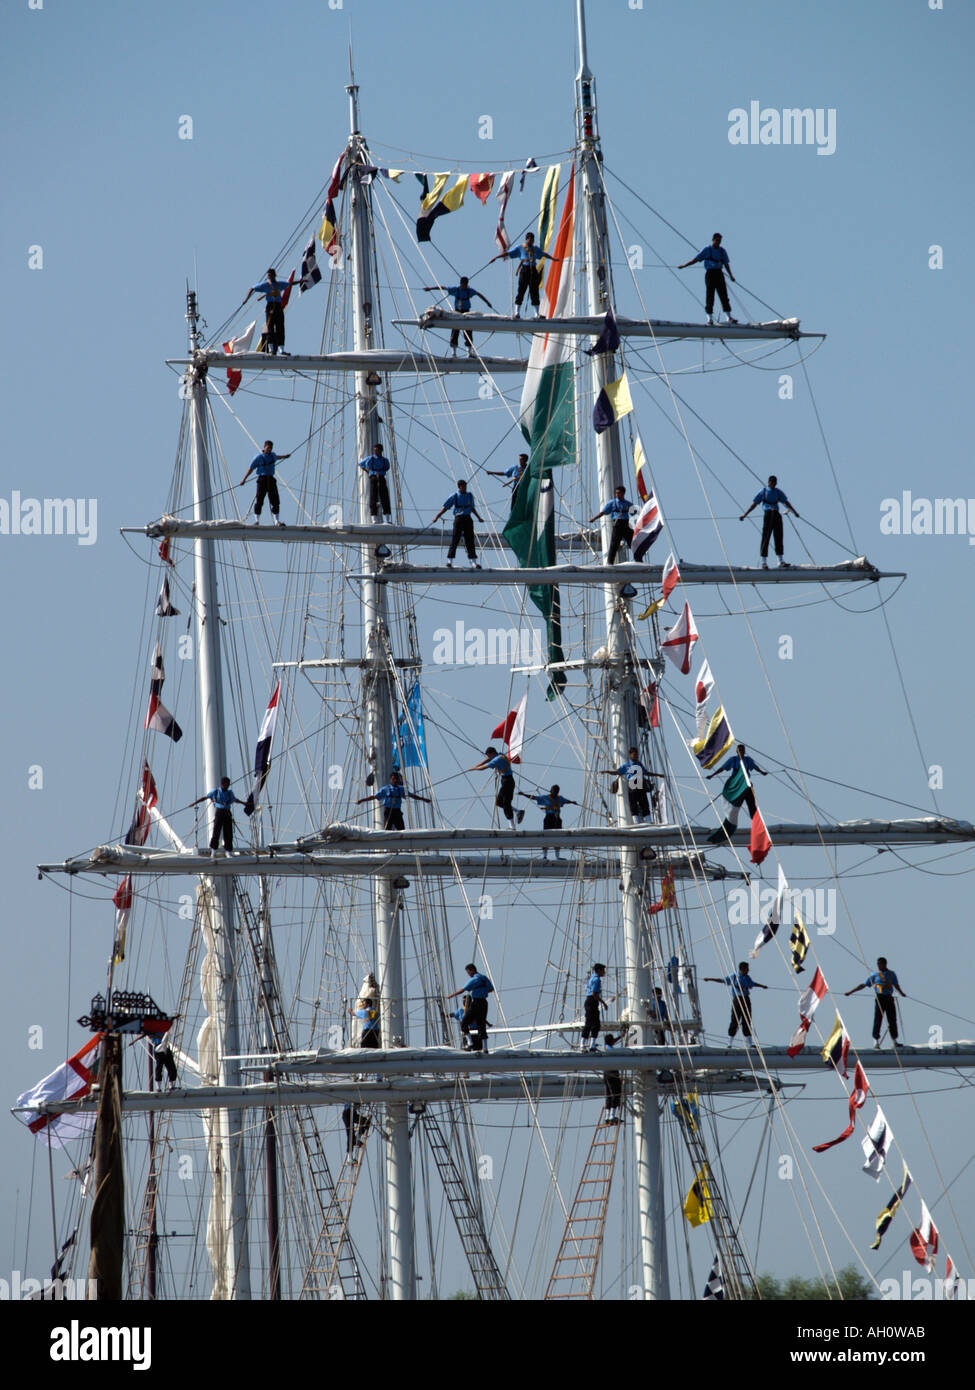 Masts and yards of the Indian tall ship INS Tarangini with sailors aloft Sail Amsterdam tall ship event the Netherlands - Stock Image